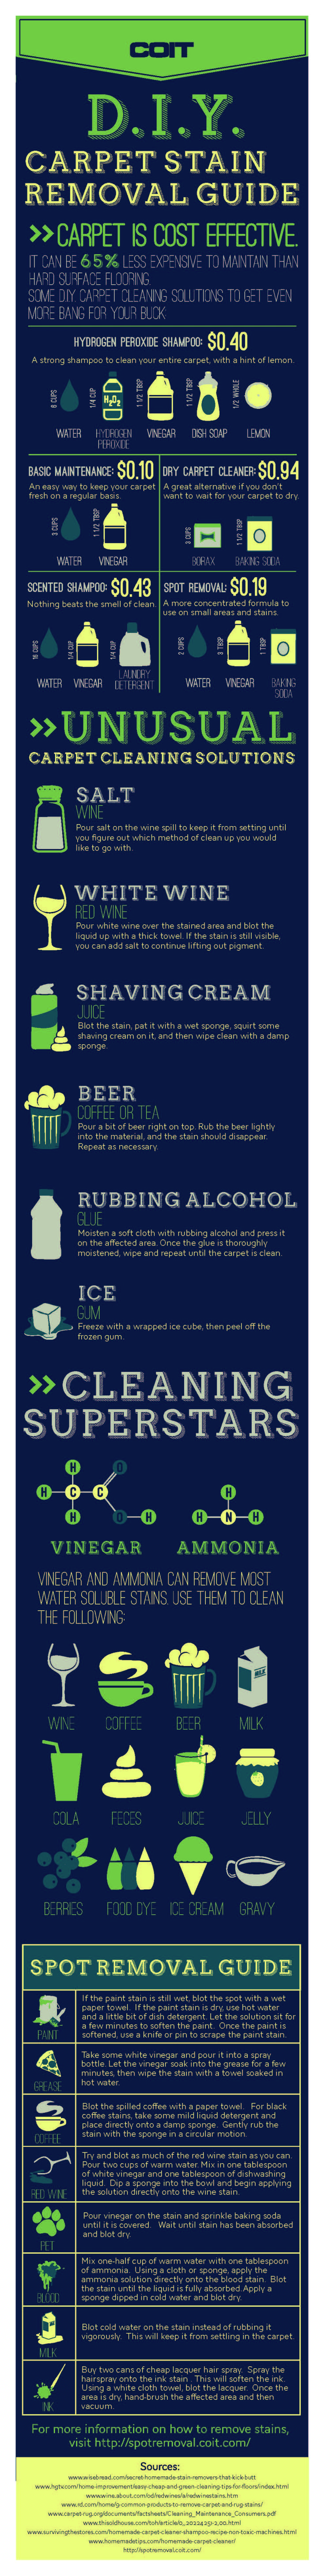 DIY Carpet Stain Removal Guide